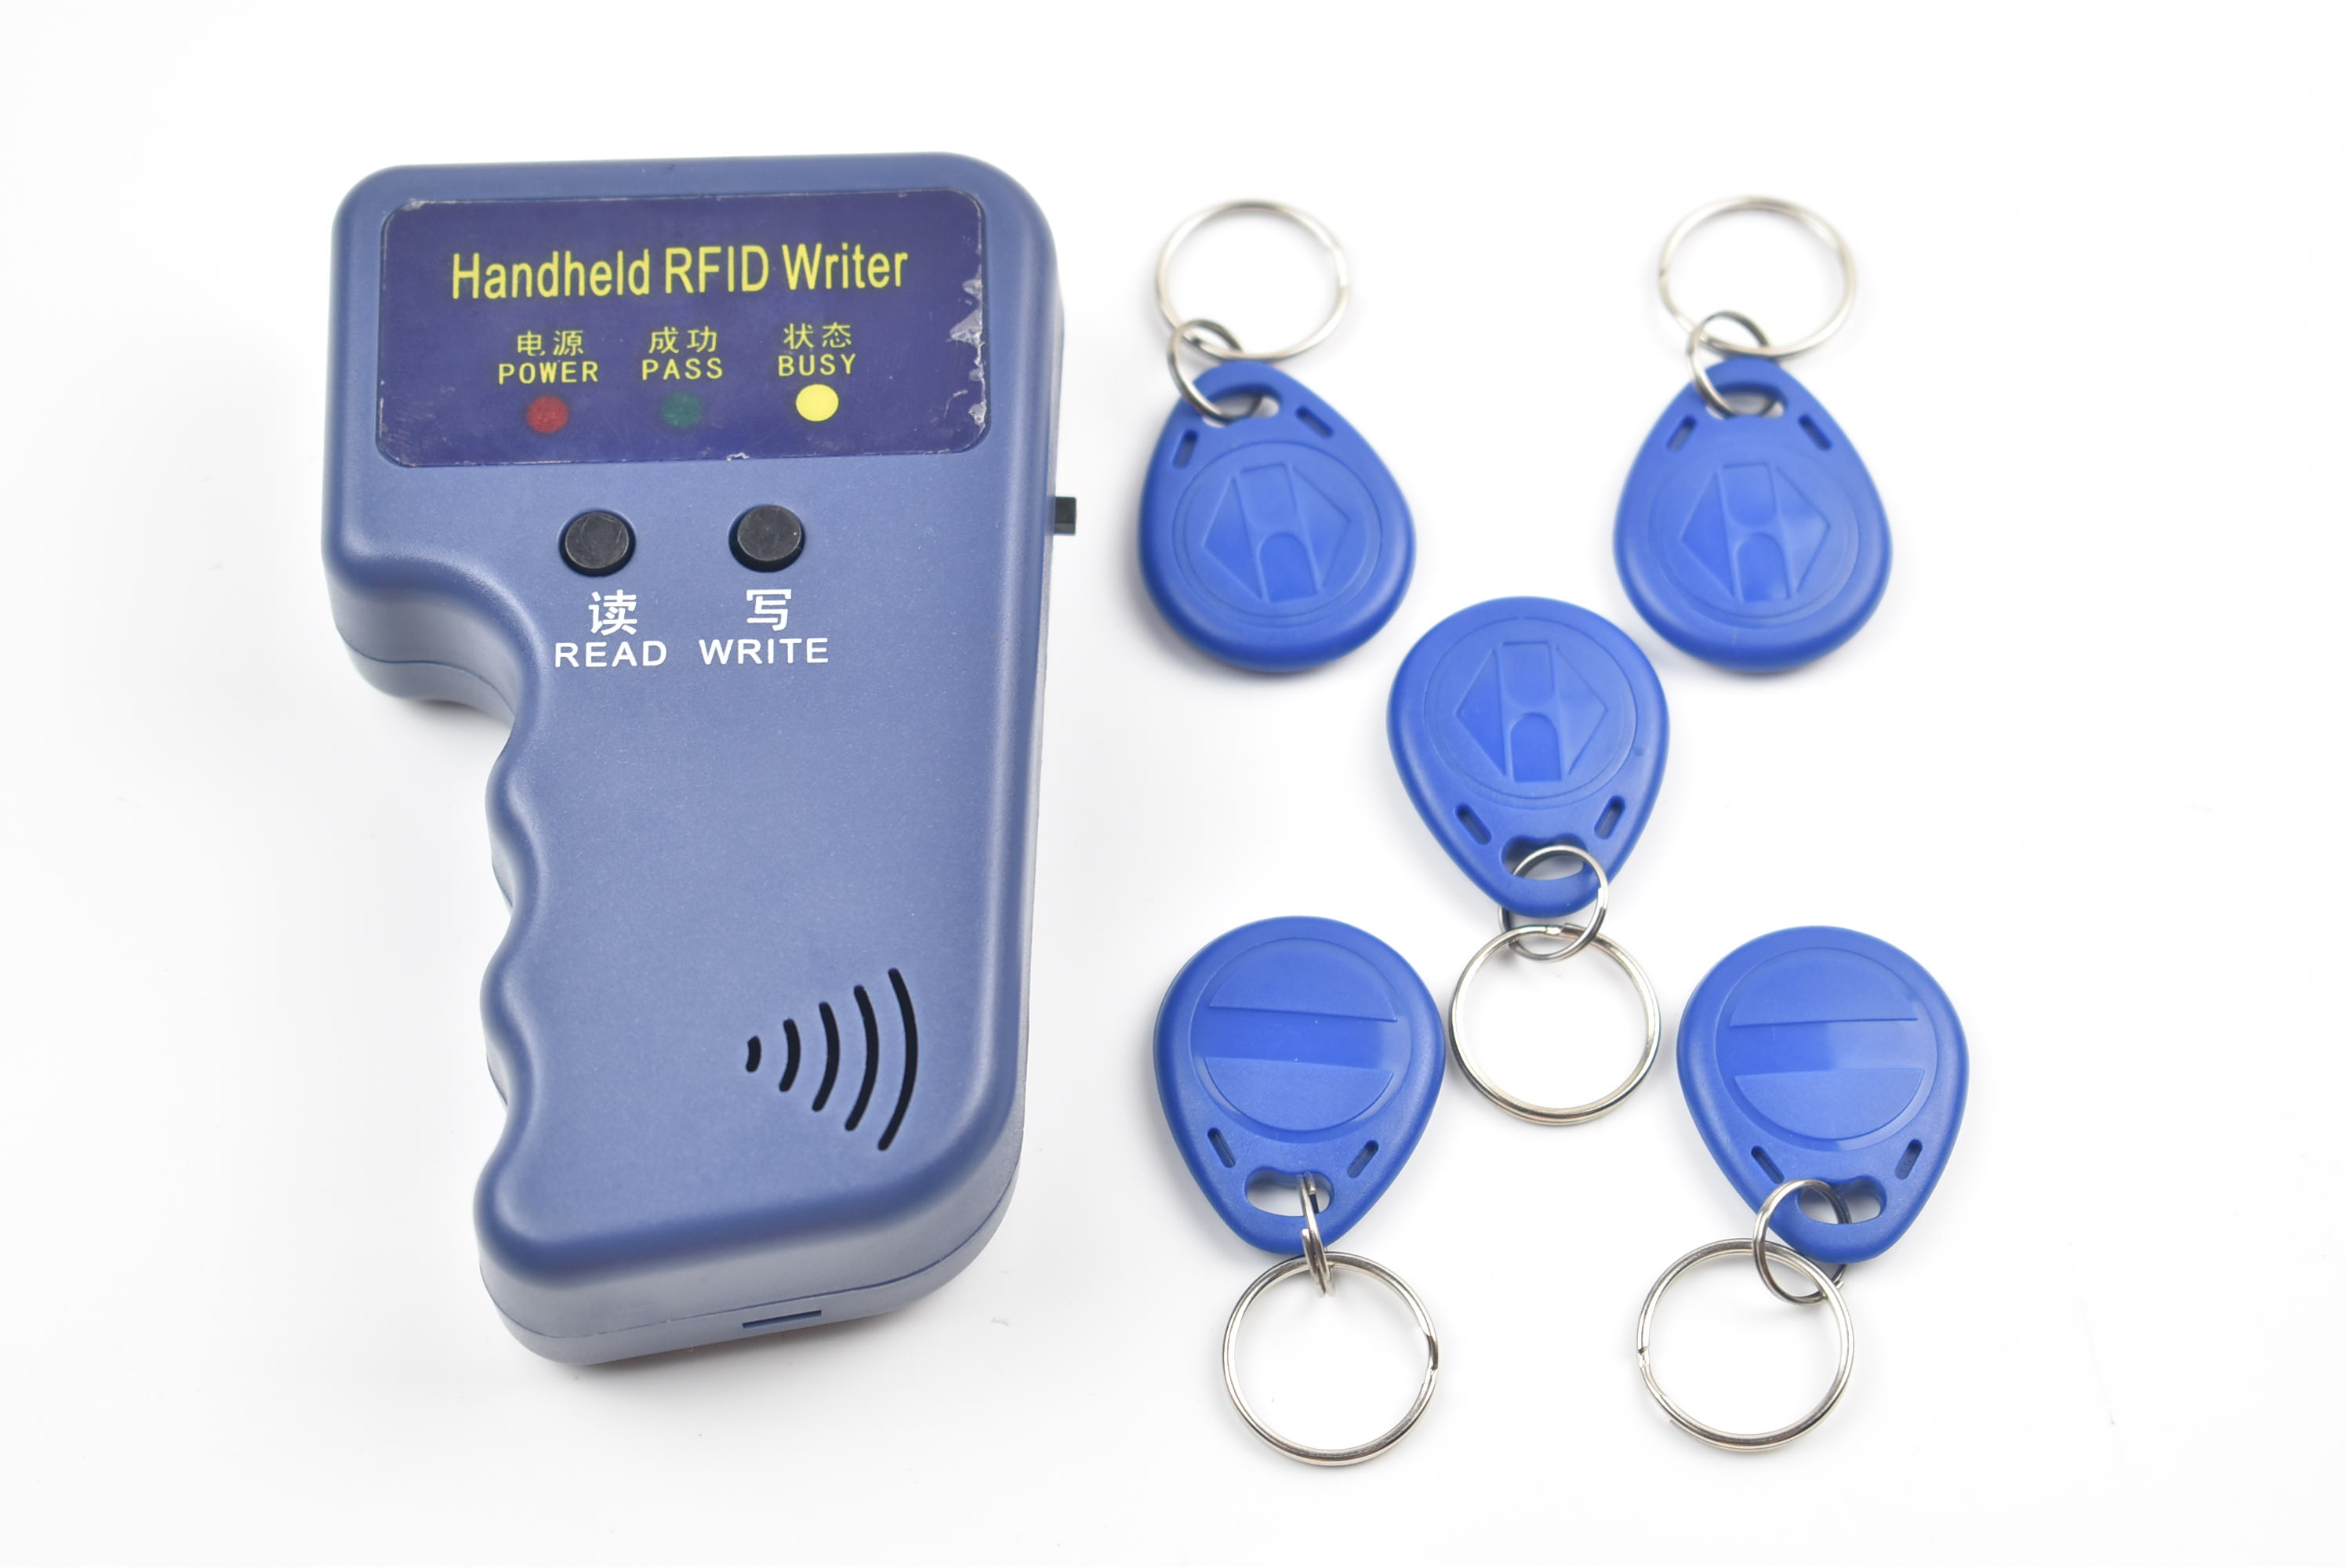 125KHz RFID ID Card Reader & Writer/Copier/Duplicator/Programmer + 5pcs Writable EM4305 T5577 Tags Access Control handheld 125khz rfid id card duplicator programmer reader writer copier duplicator 6 pcs cards 6 pcstags kit